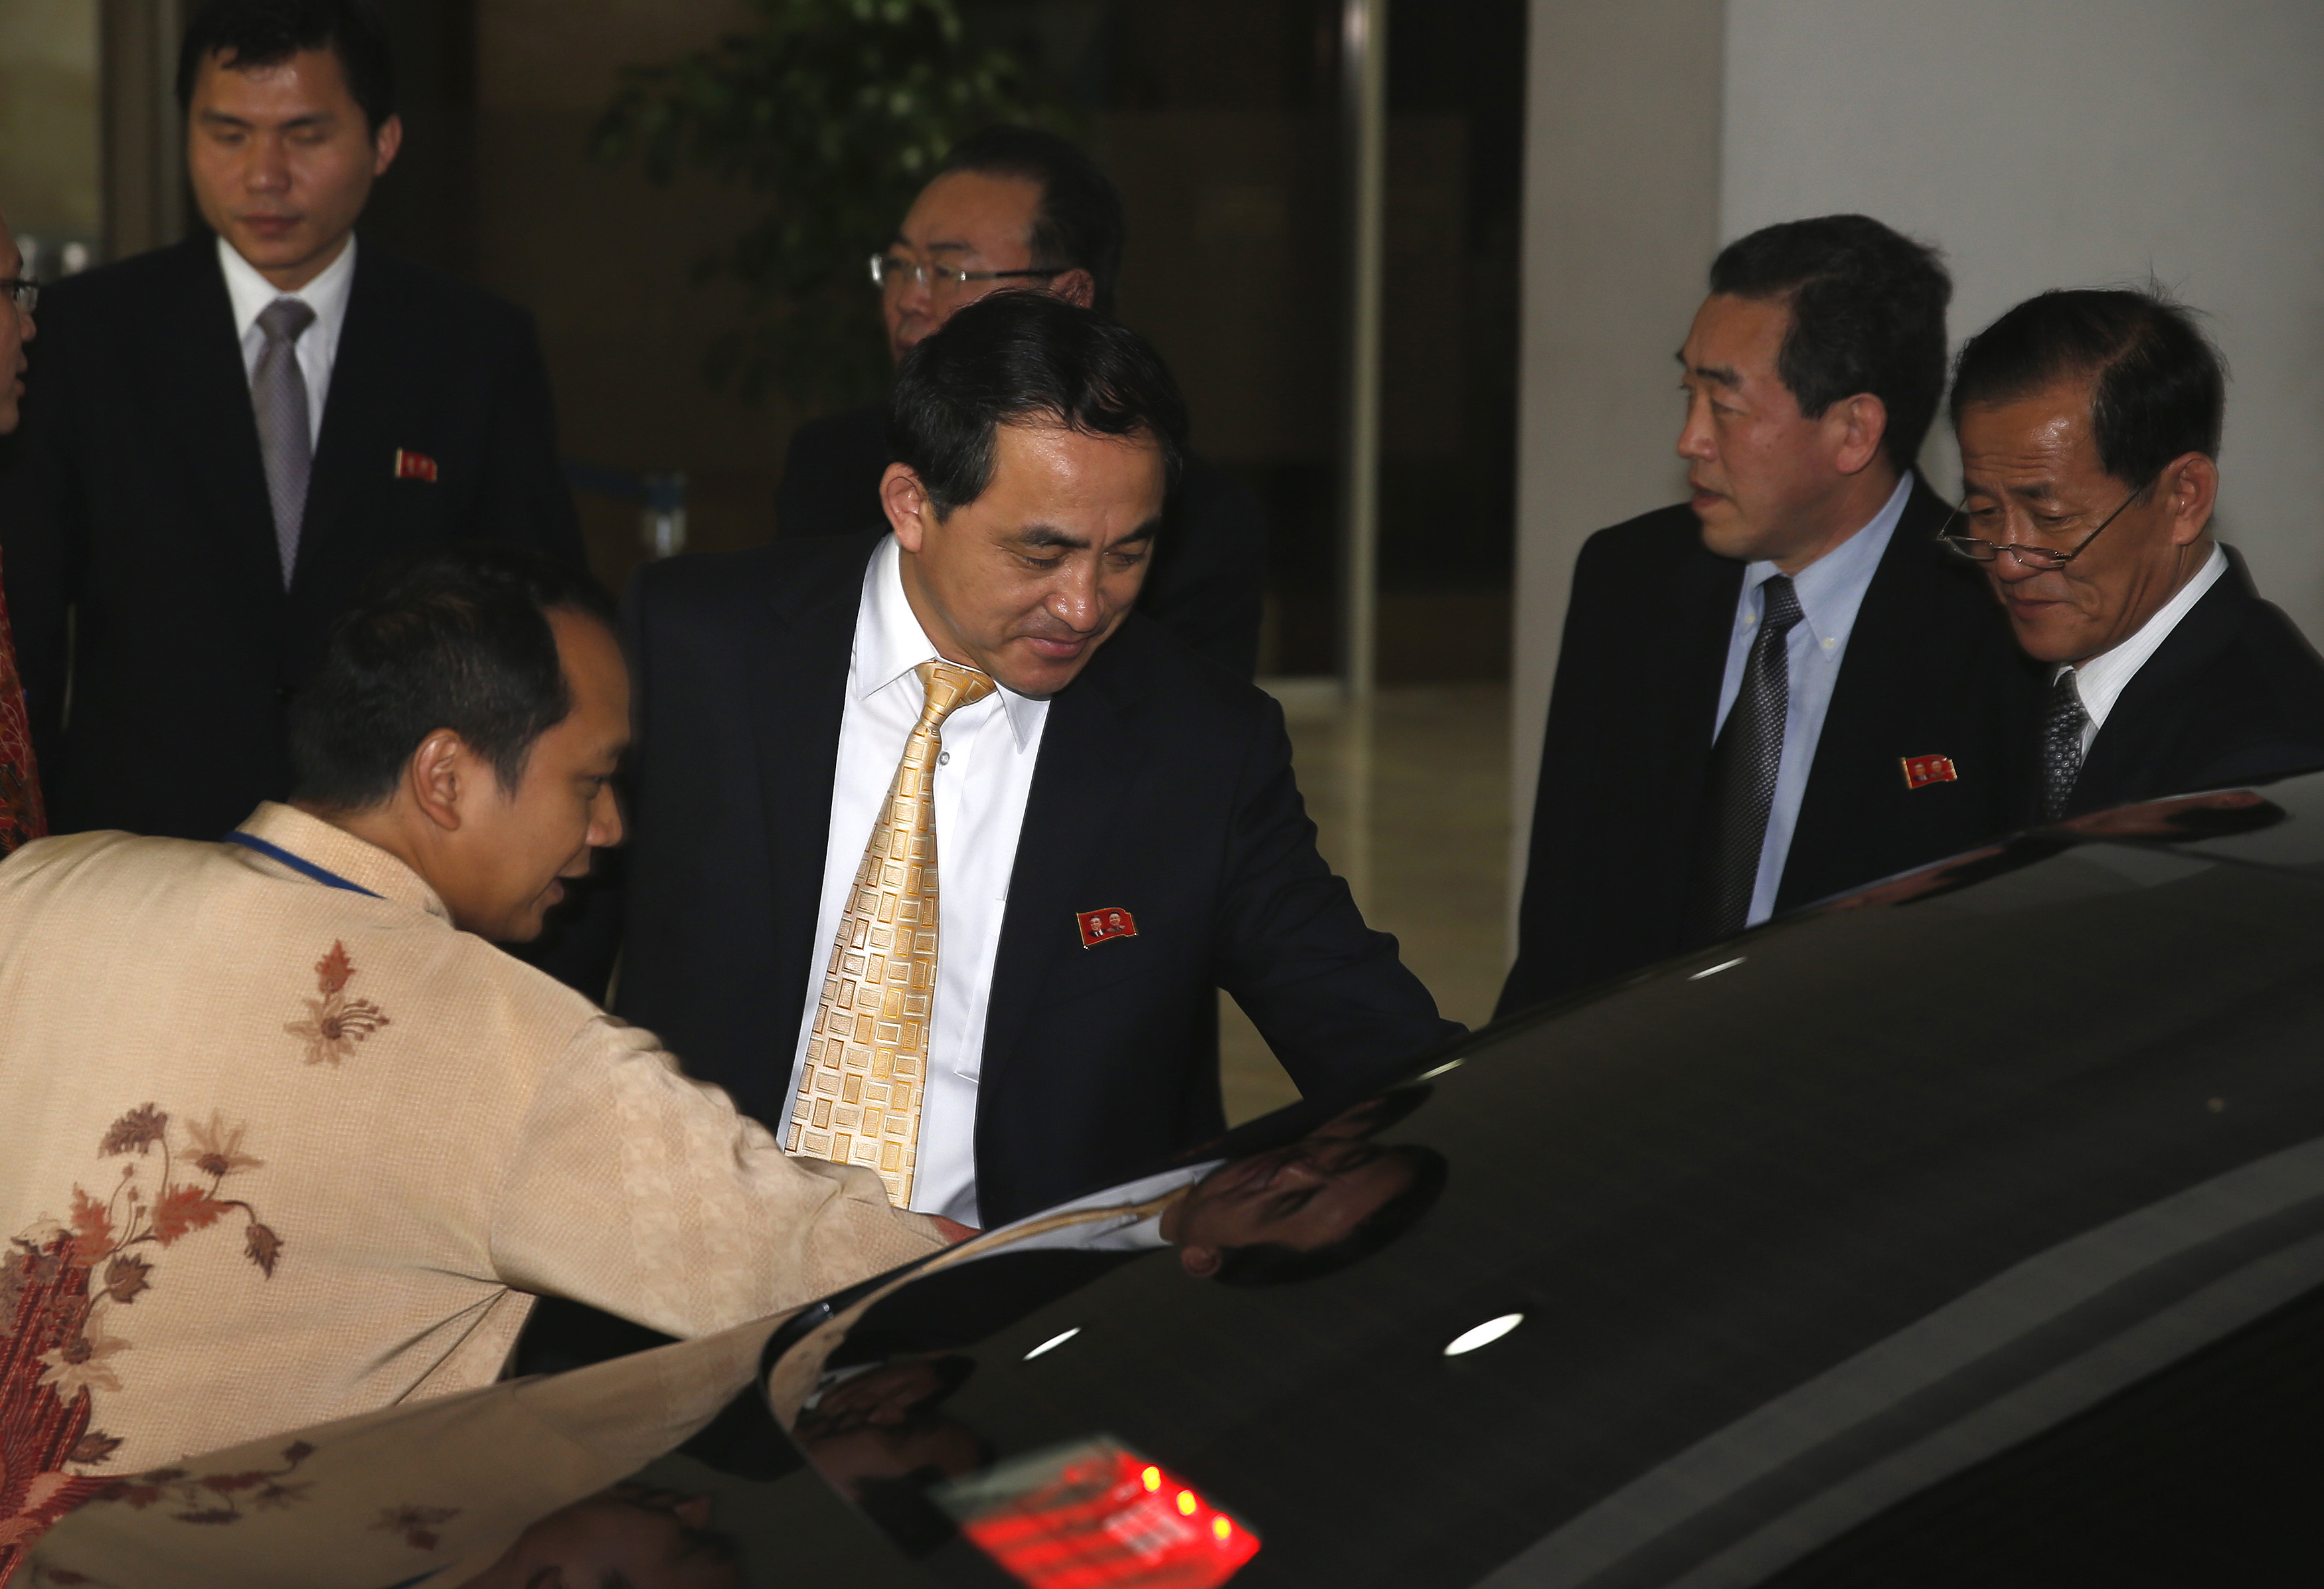 North Korea's Deputy Foreign Minister Ri Kil Song leaves after a meeting with Indonesian officials at the Foreign Ministry in Jakarta, February 13, 2015.